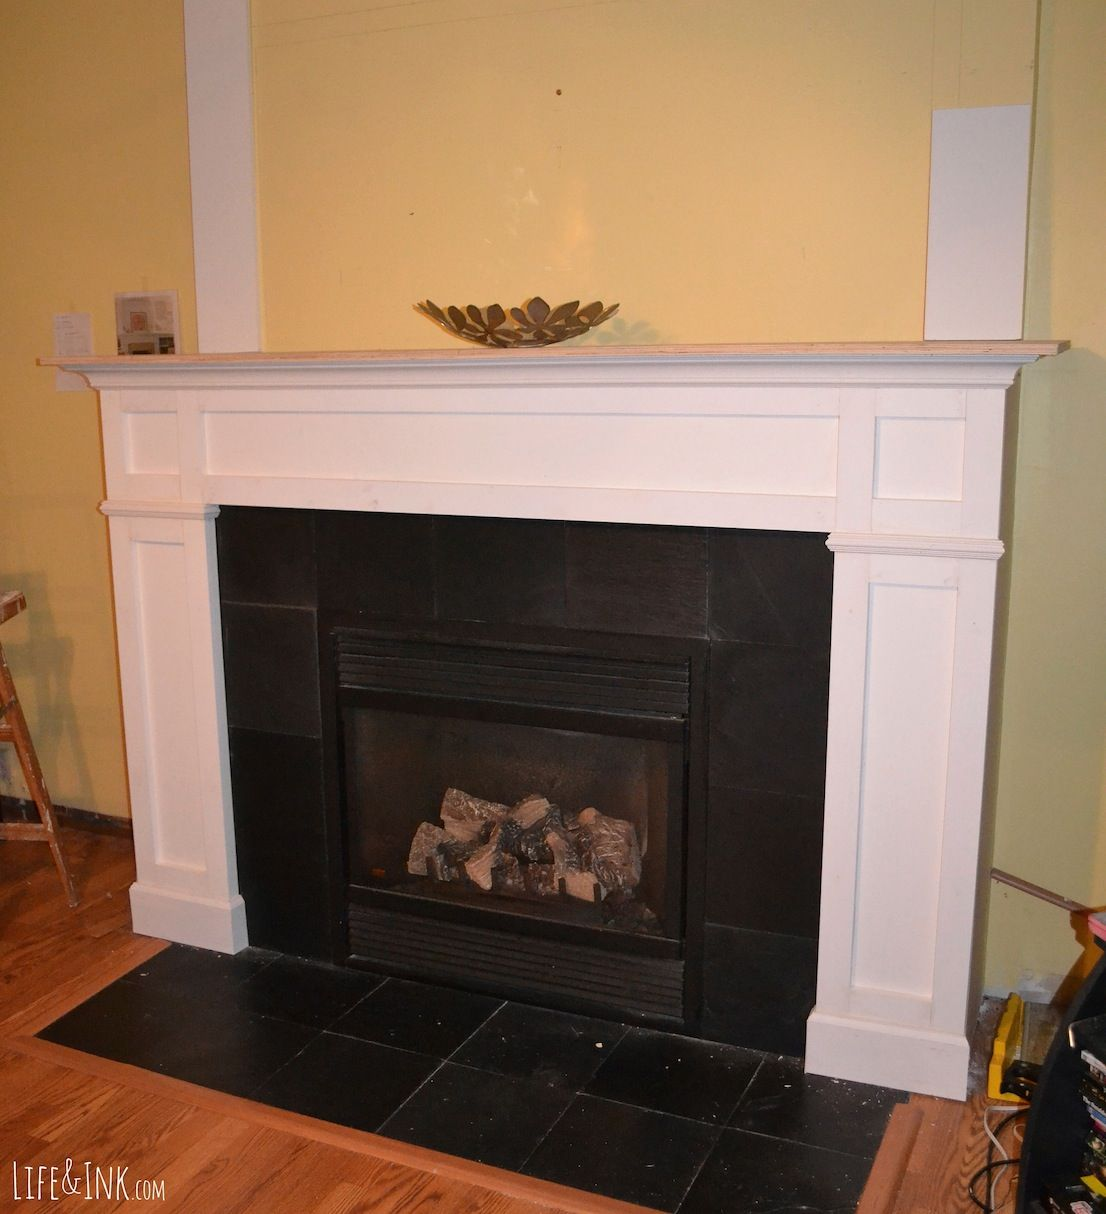 Admirable Shaker Style Fireplace Google Search Fireplace Download Free Architecture Designs Boapuretrmadebymaigaardcom